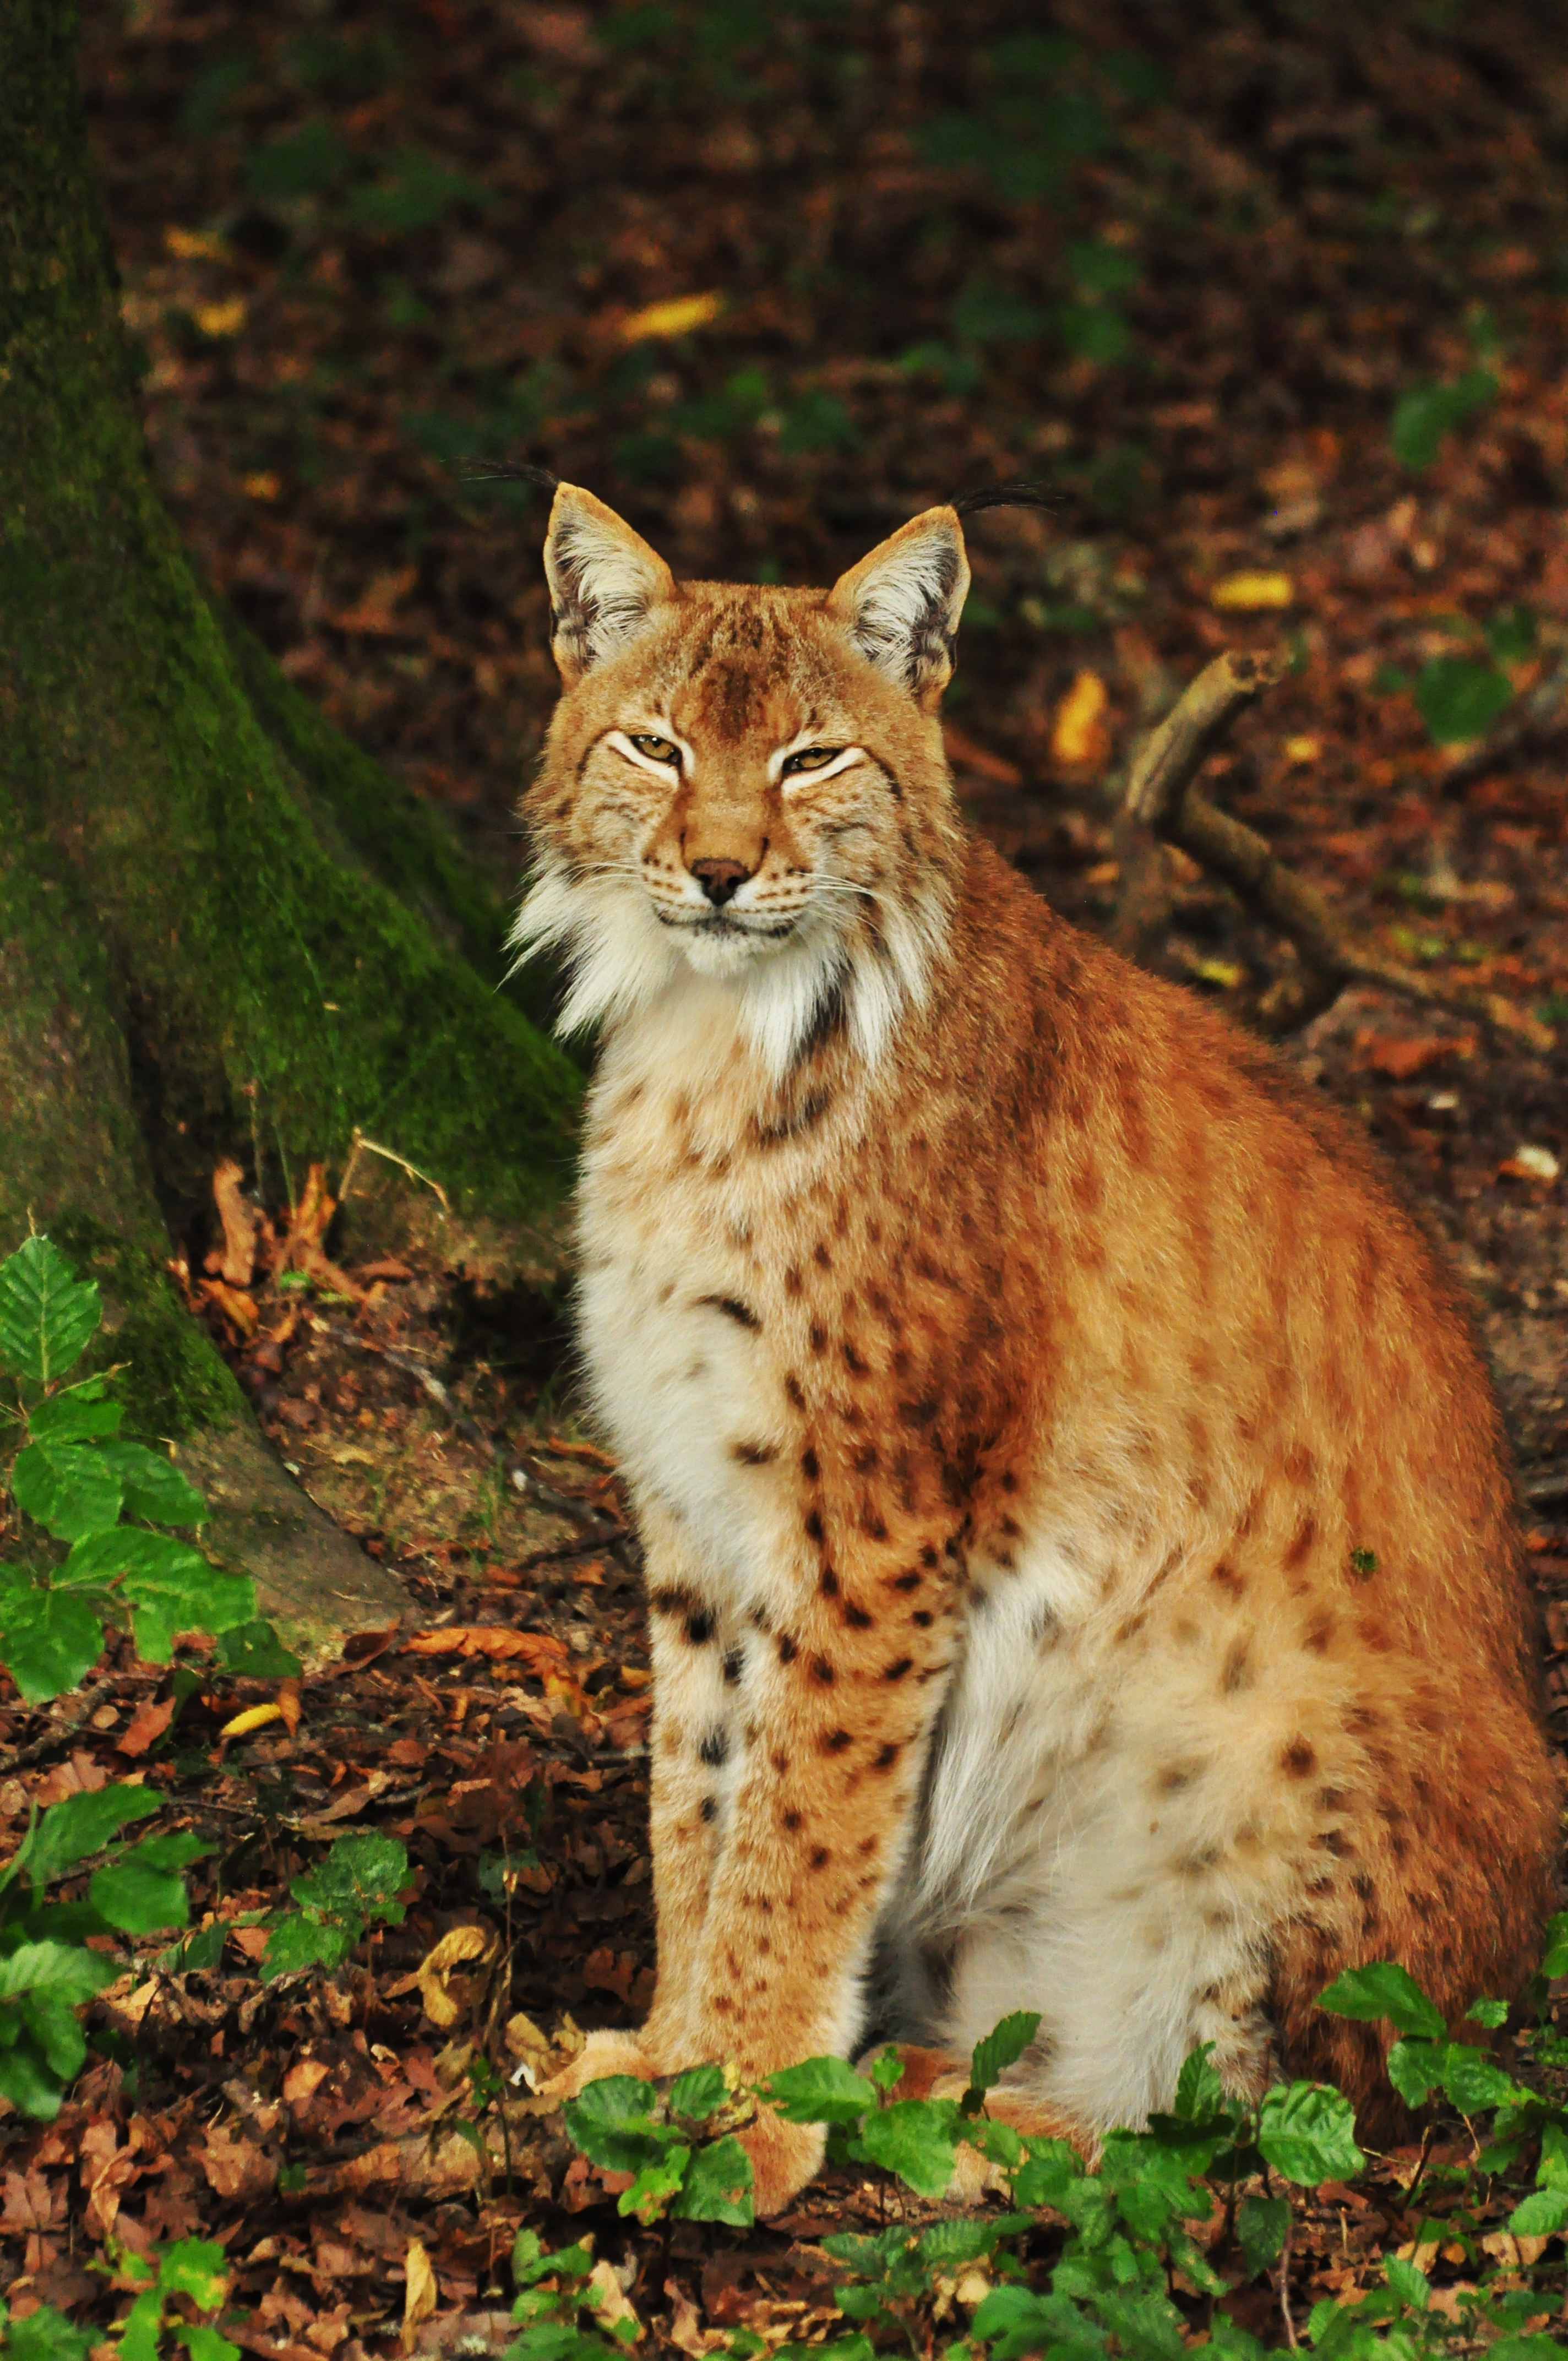 97687 download wallpaper Animals, Iris, Forest, Predator, Animal screensavers and pictures for free